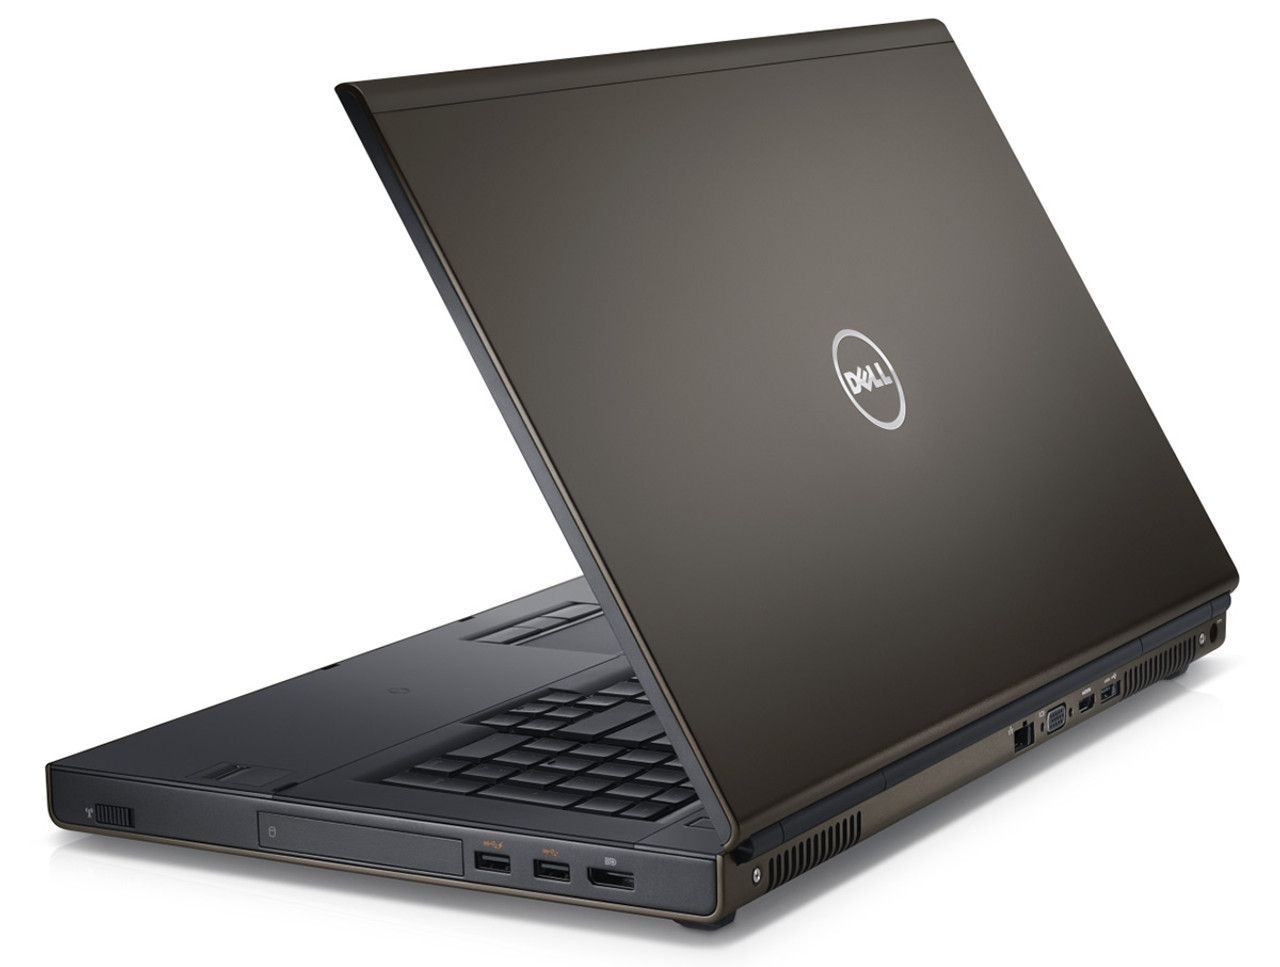 Dell Precision M6700 Laptop Quad Core i7 2.7GHz, 16GB Ram, 250GB SSD, DVD-RW, Windows 10 Pro 64